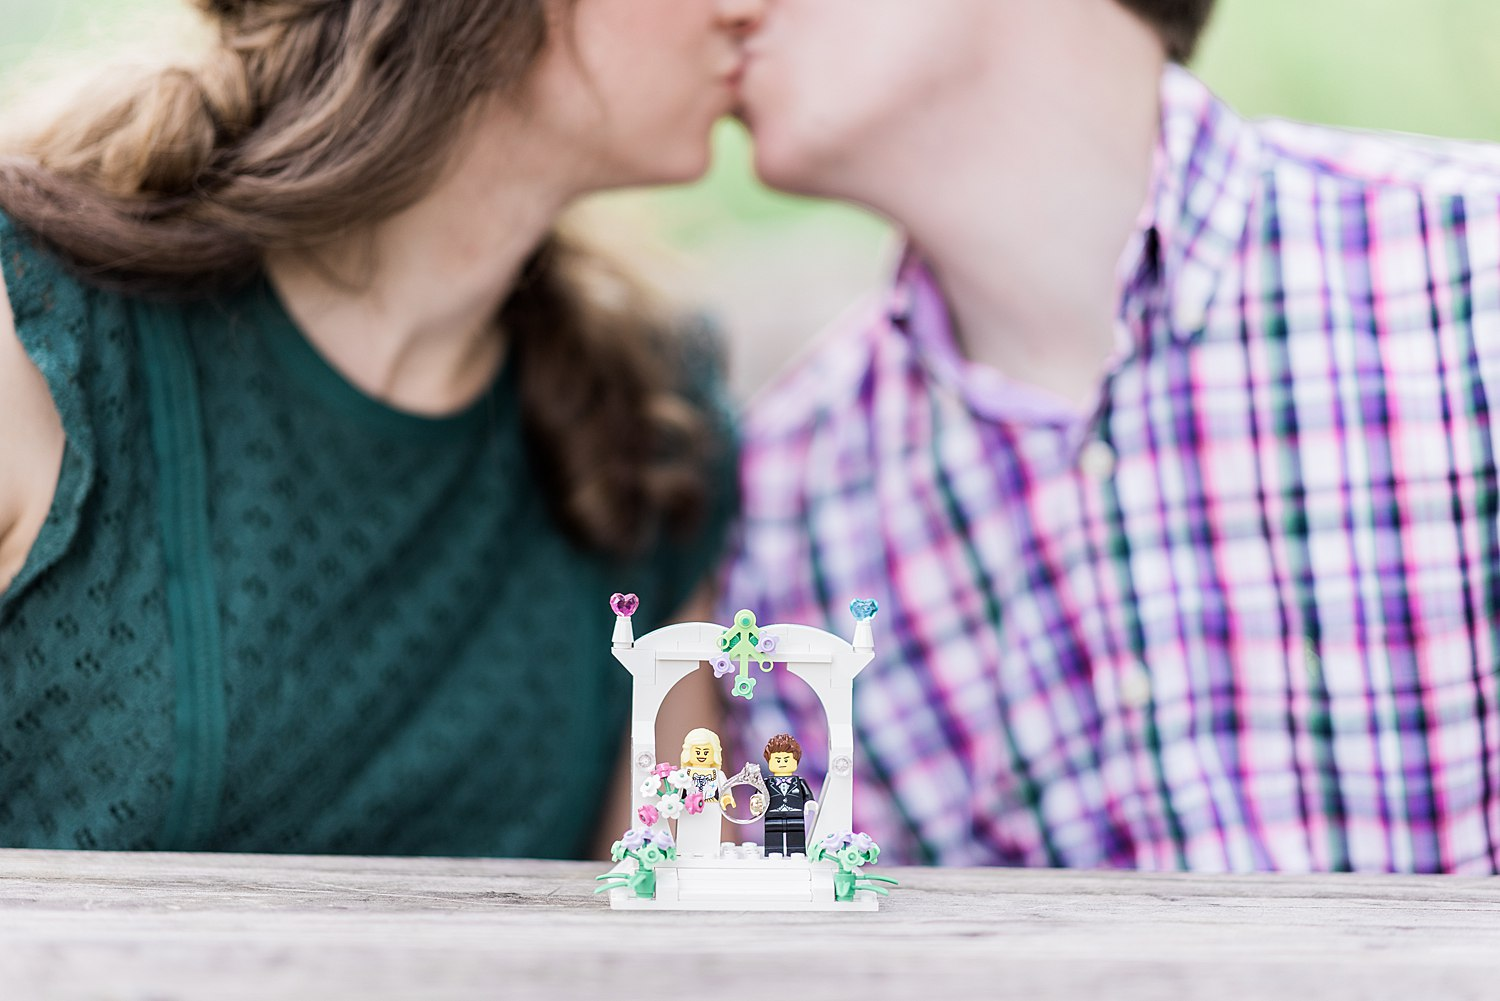 meadsquarryengagement-alice&dan-lego-cake-toppers